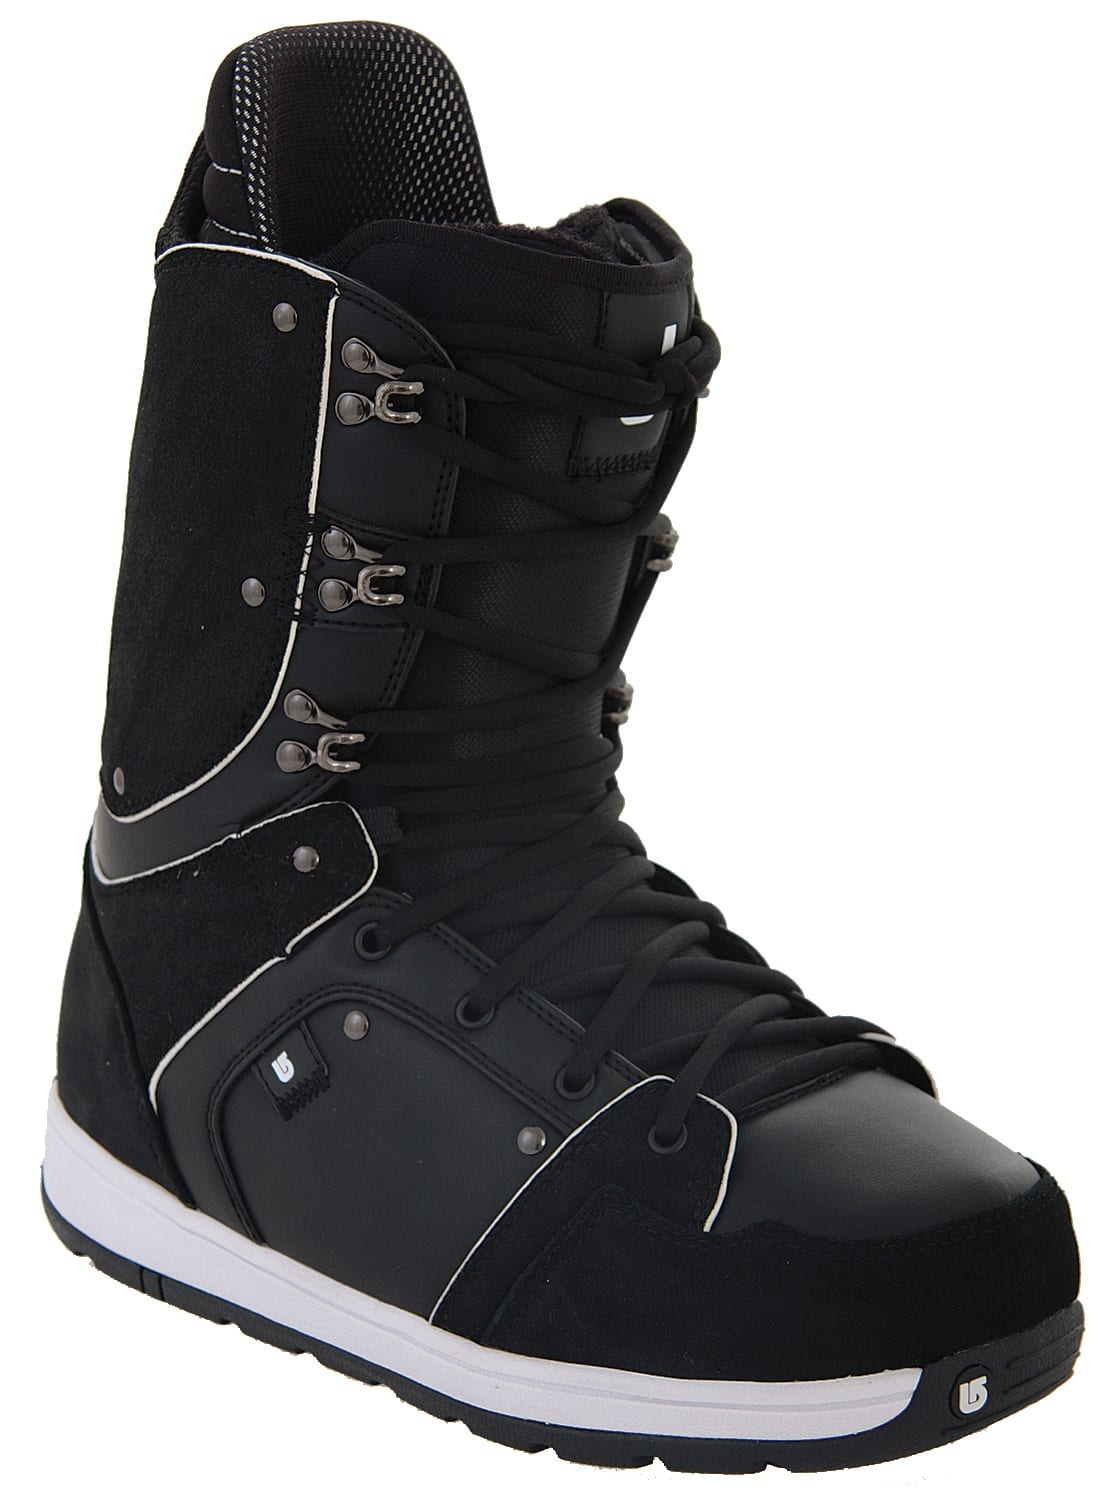 Shop for Burton Jeremy Jones Snowboard Boots Black/White - Kid's